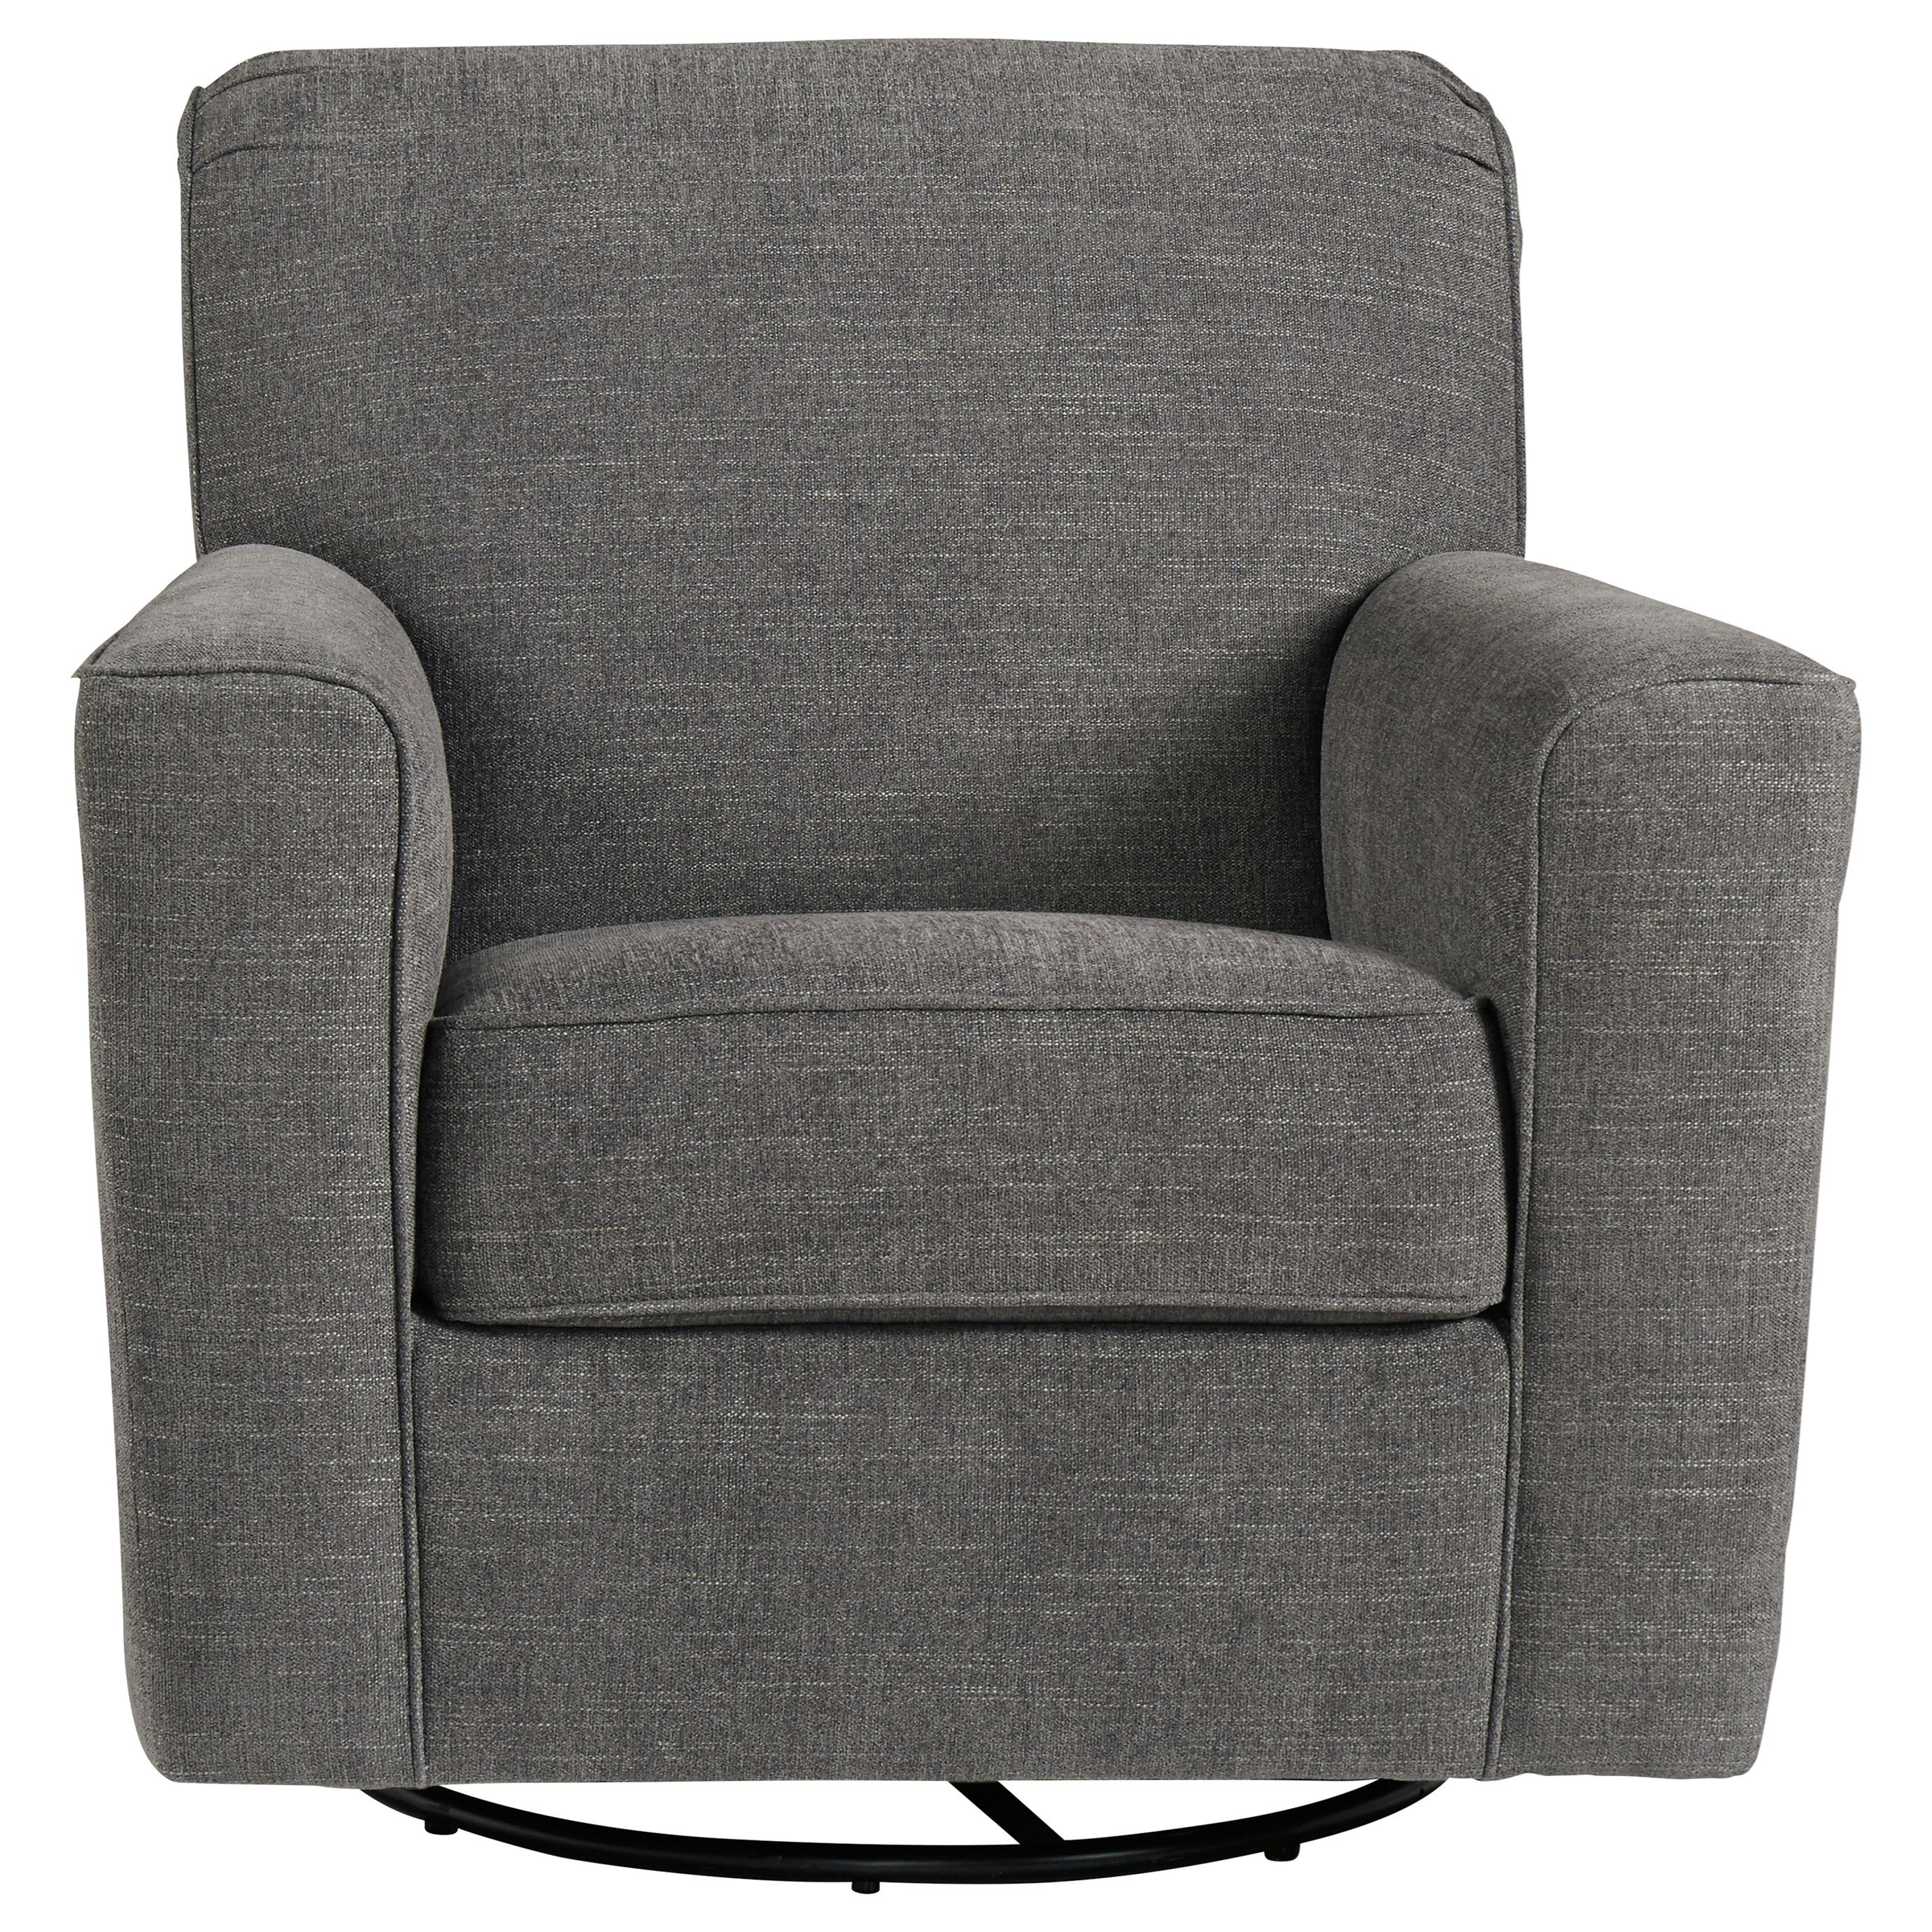 Alcona Swivel Glider Accent Chair by Ashley Furniture at Lapeer Furniture & Mattress Center